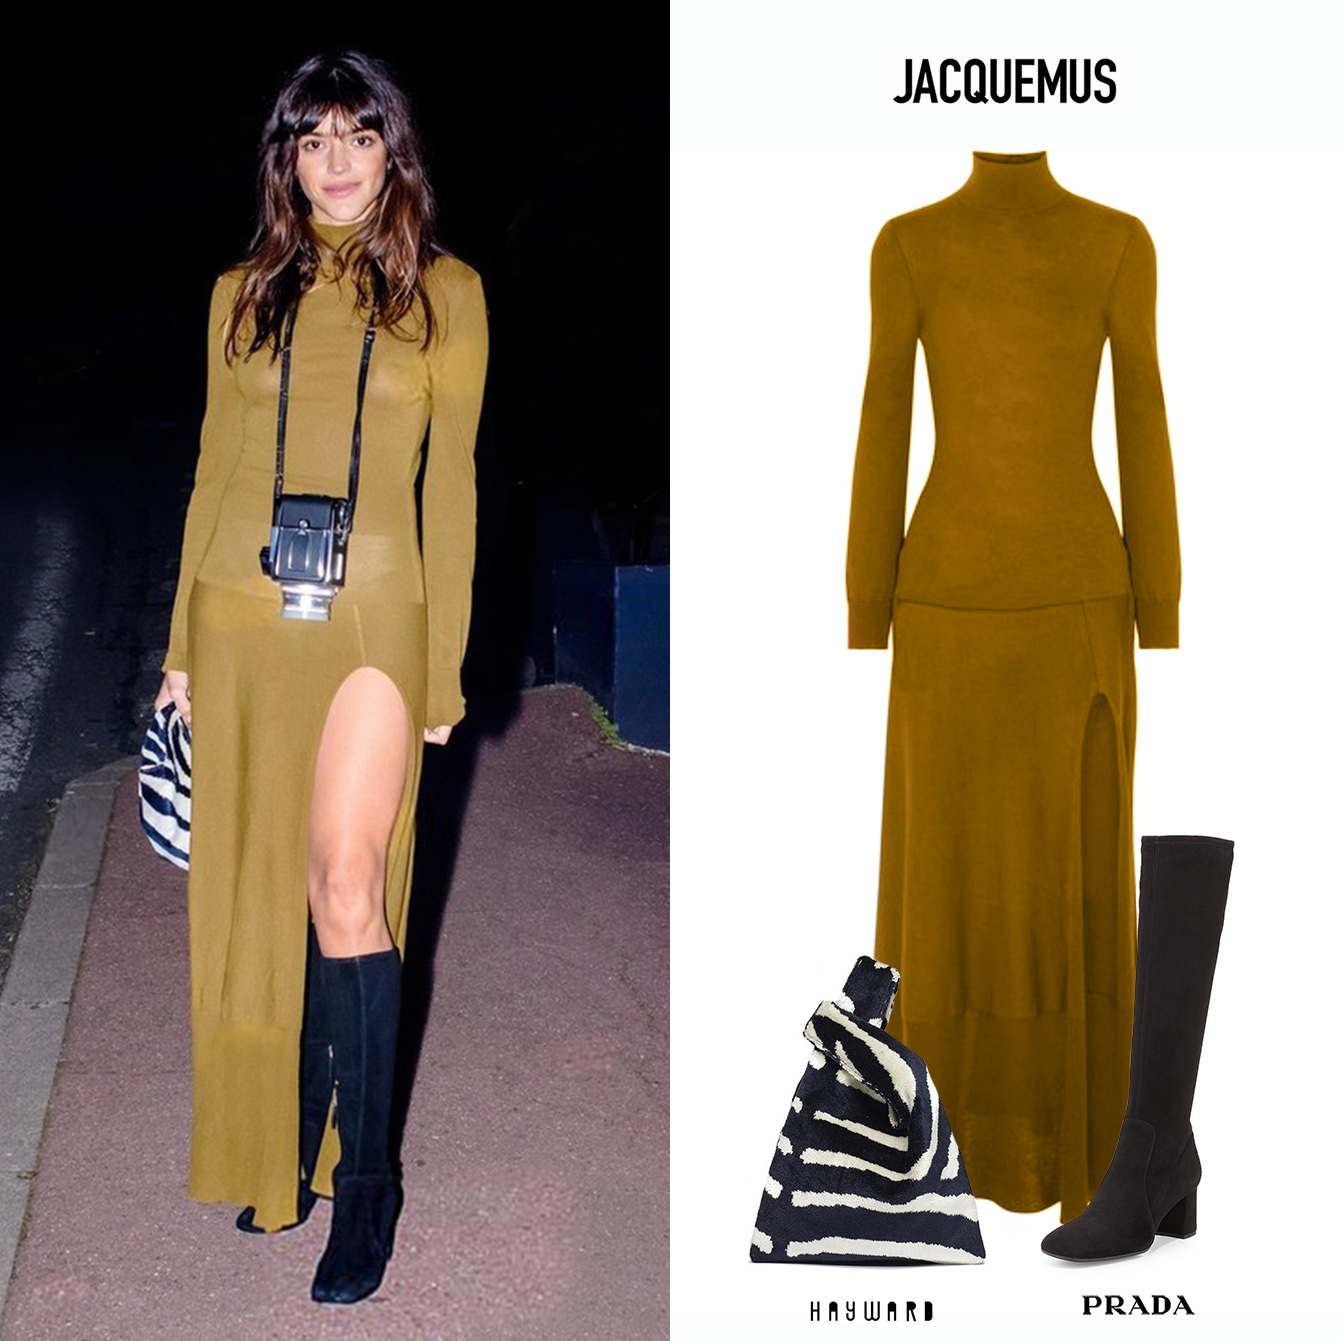 Calu_Rivero_Jacquemus_Baya_Knit_Dress_Brown_Vestido_Prada_Botas_Gamuza_Knee_Boots_Hayward_Zebra_Mini_Shopper_Bag.jpg